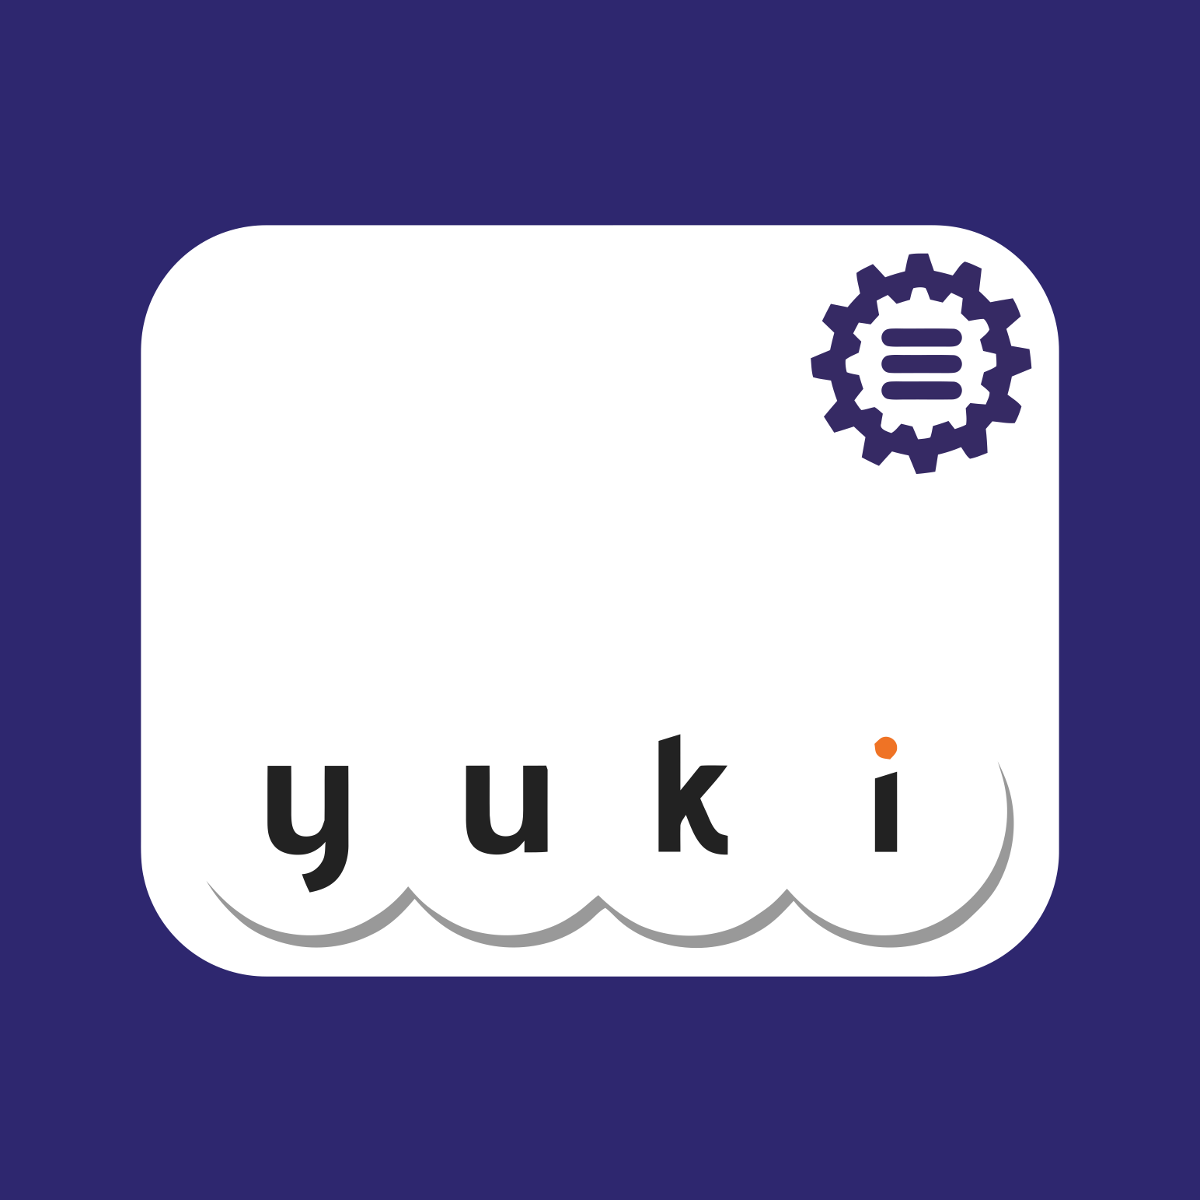 Hire Shopify Experts to integrate Yuki app into a Shopify store